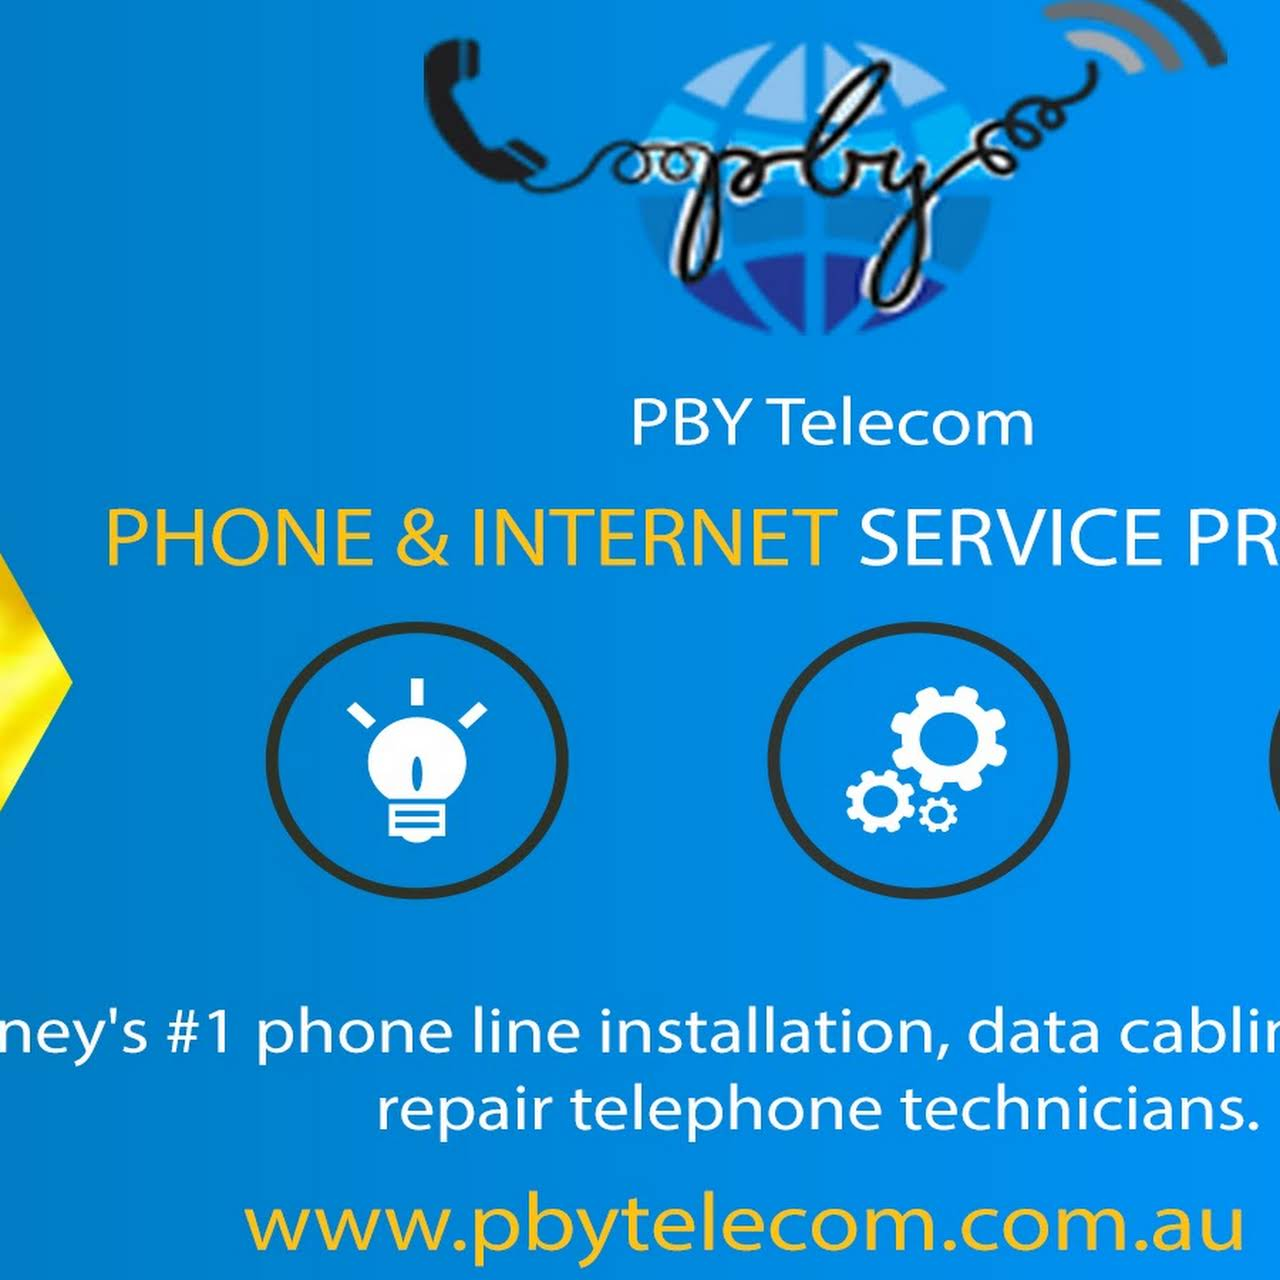 PBY Telecom PTY LTD